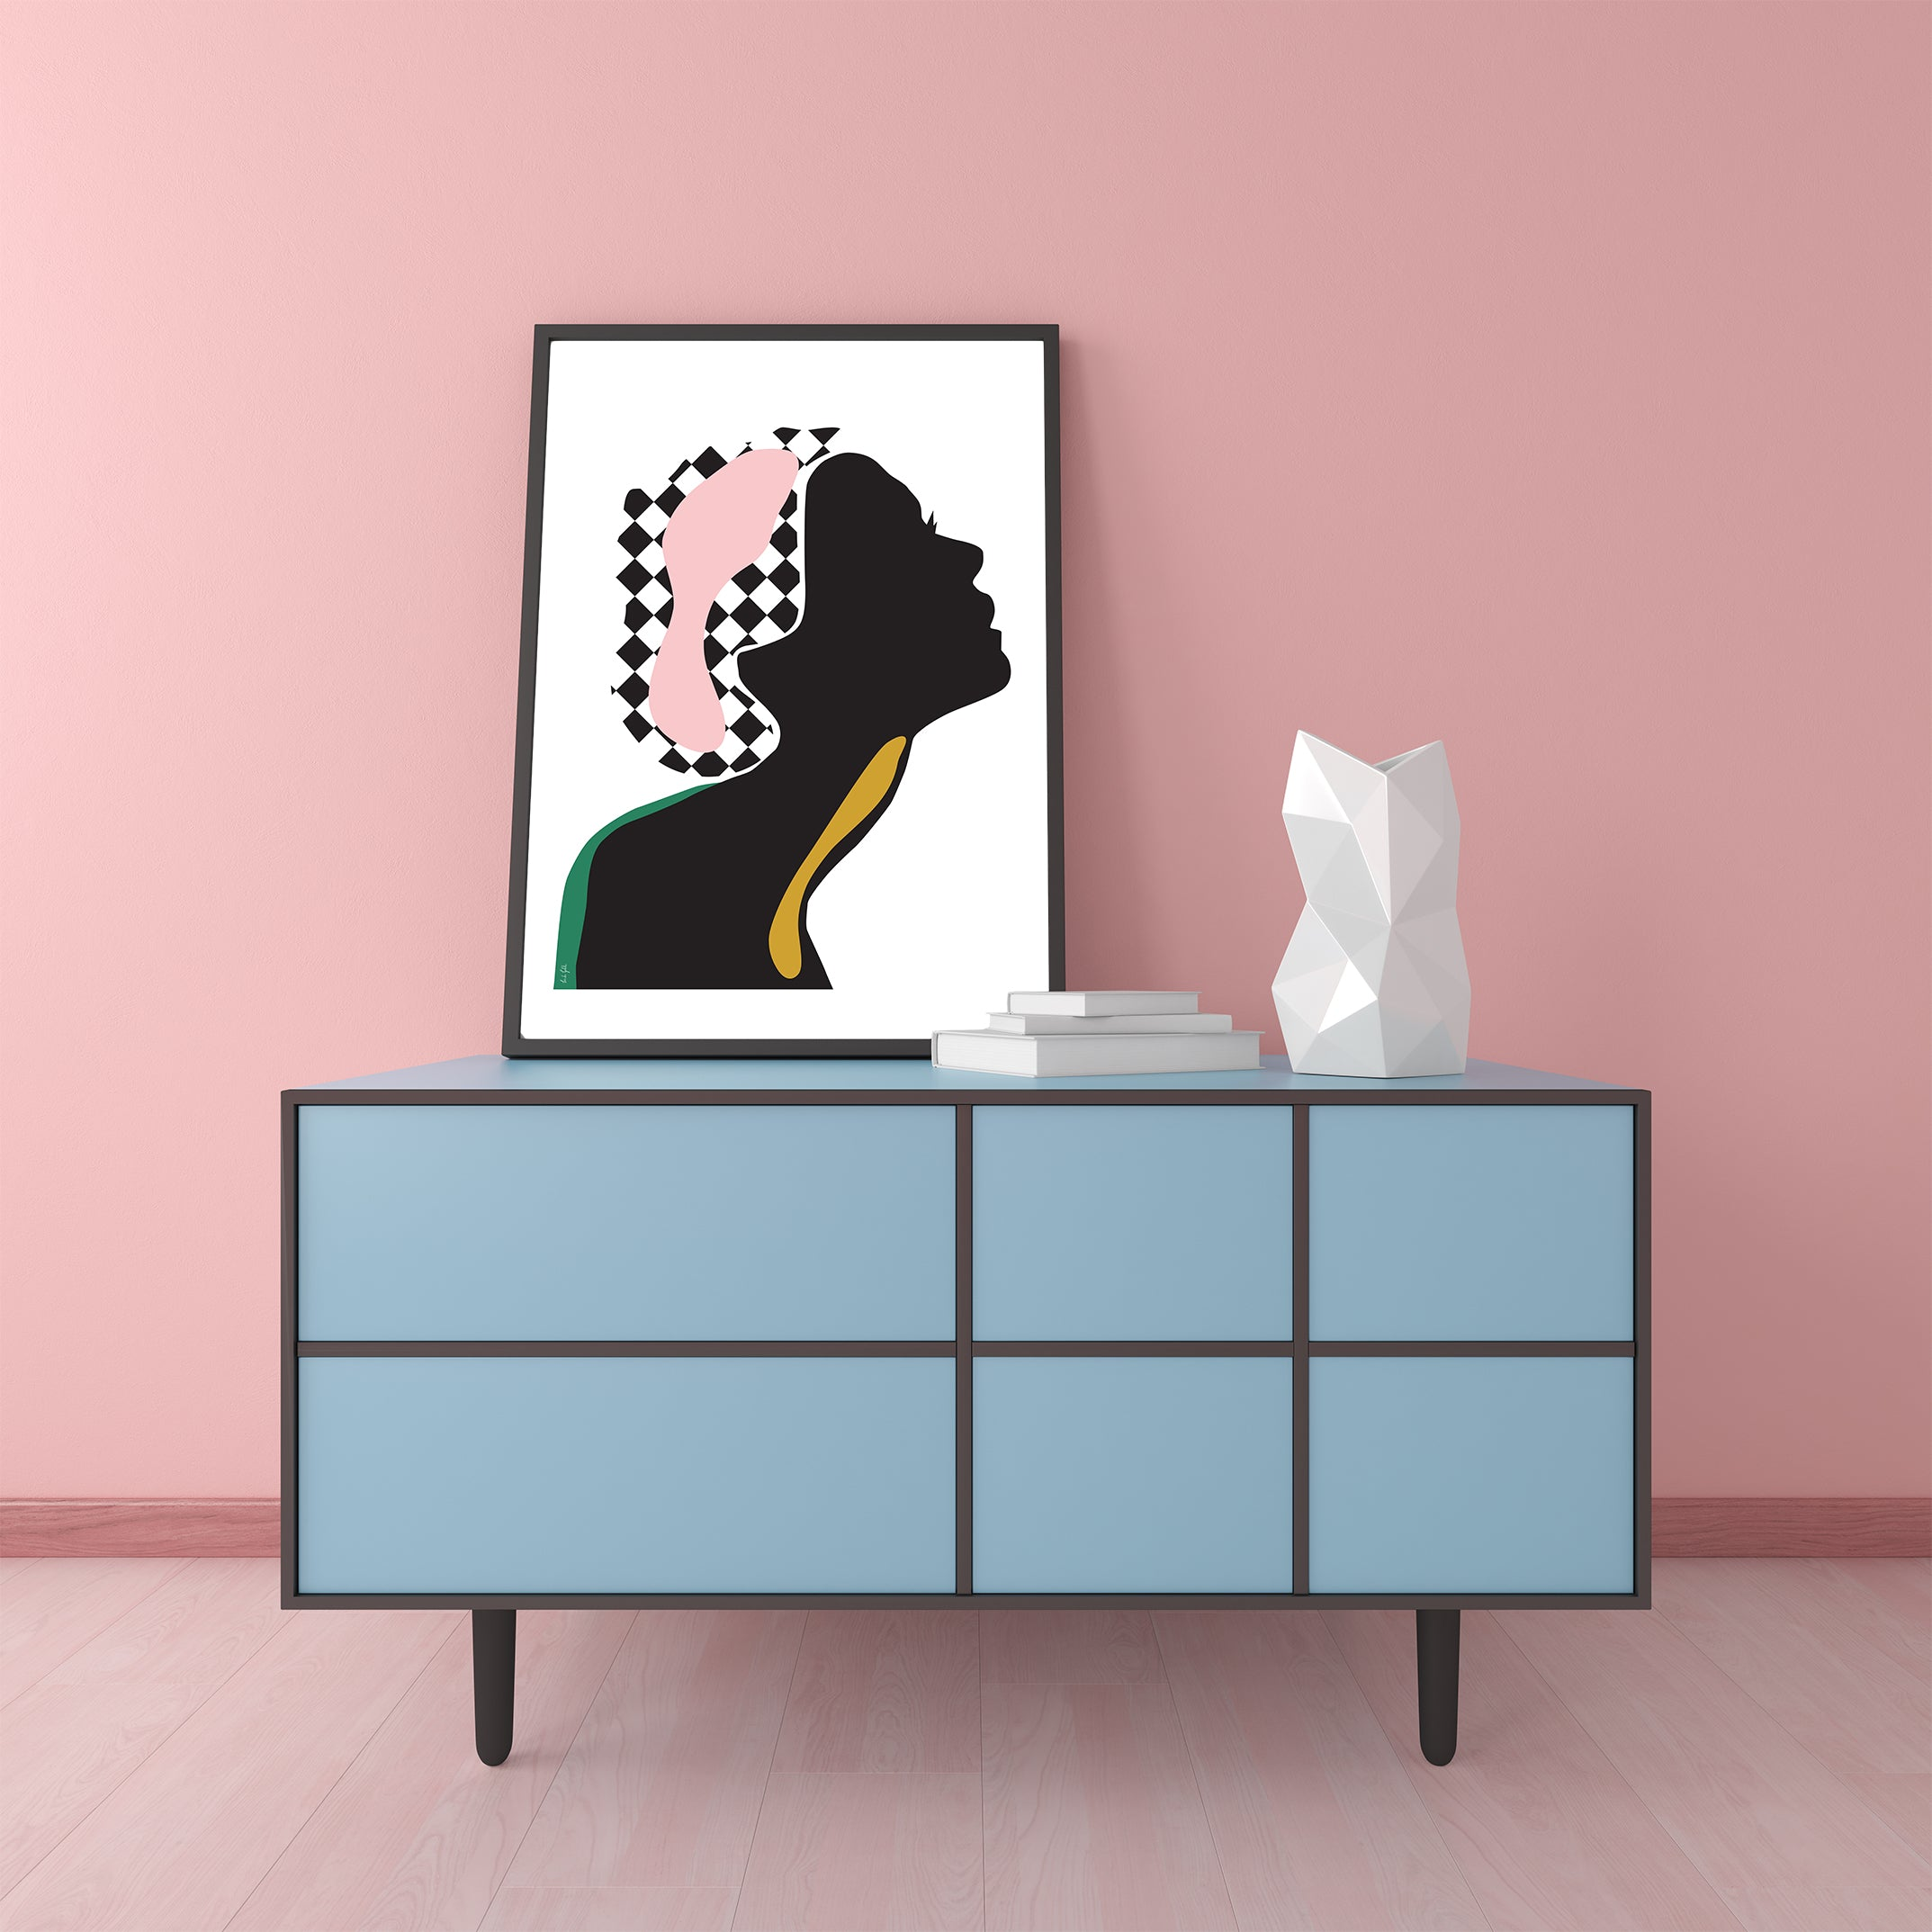 Fashion poster print by Linda Gobeta, with an abstract woman's silhouette, on white background, framed view